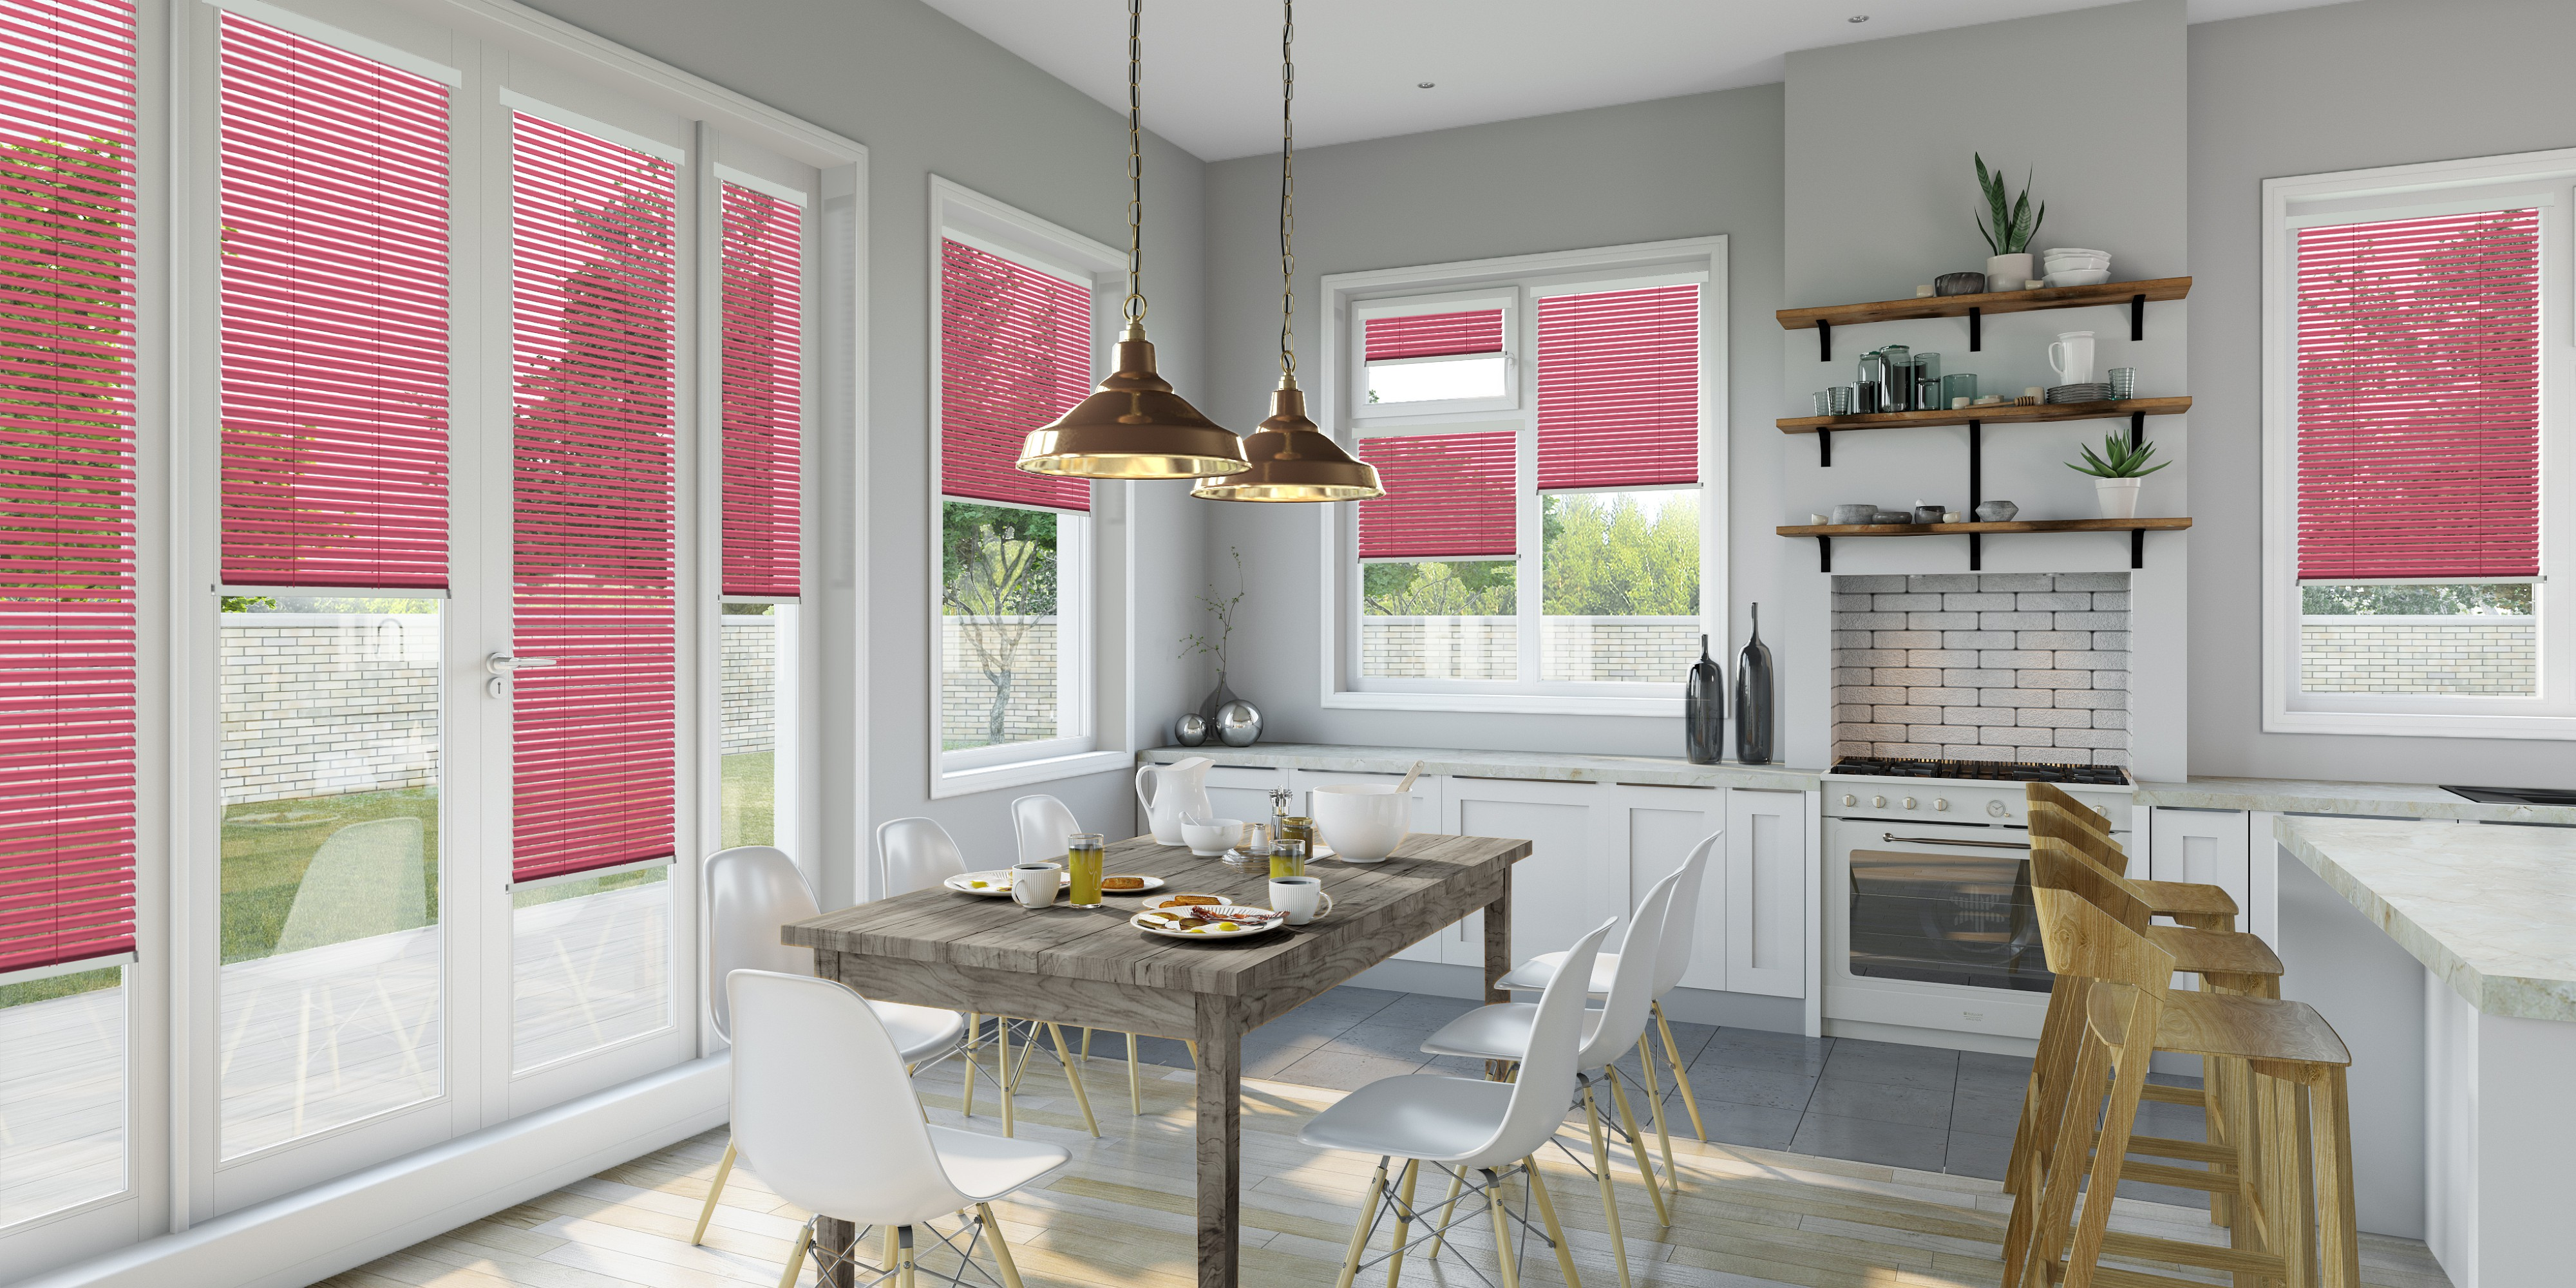 intu venetian conservatory blinds by Direct Order blinds